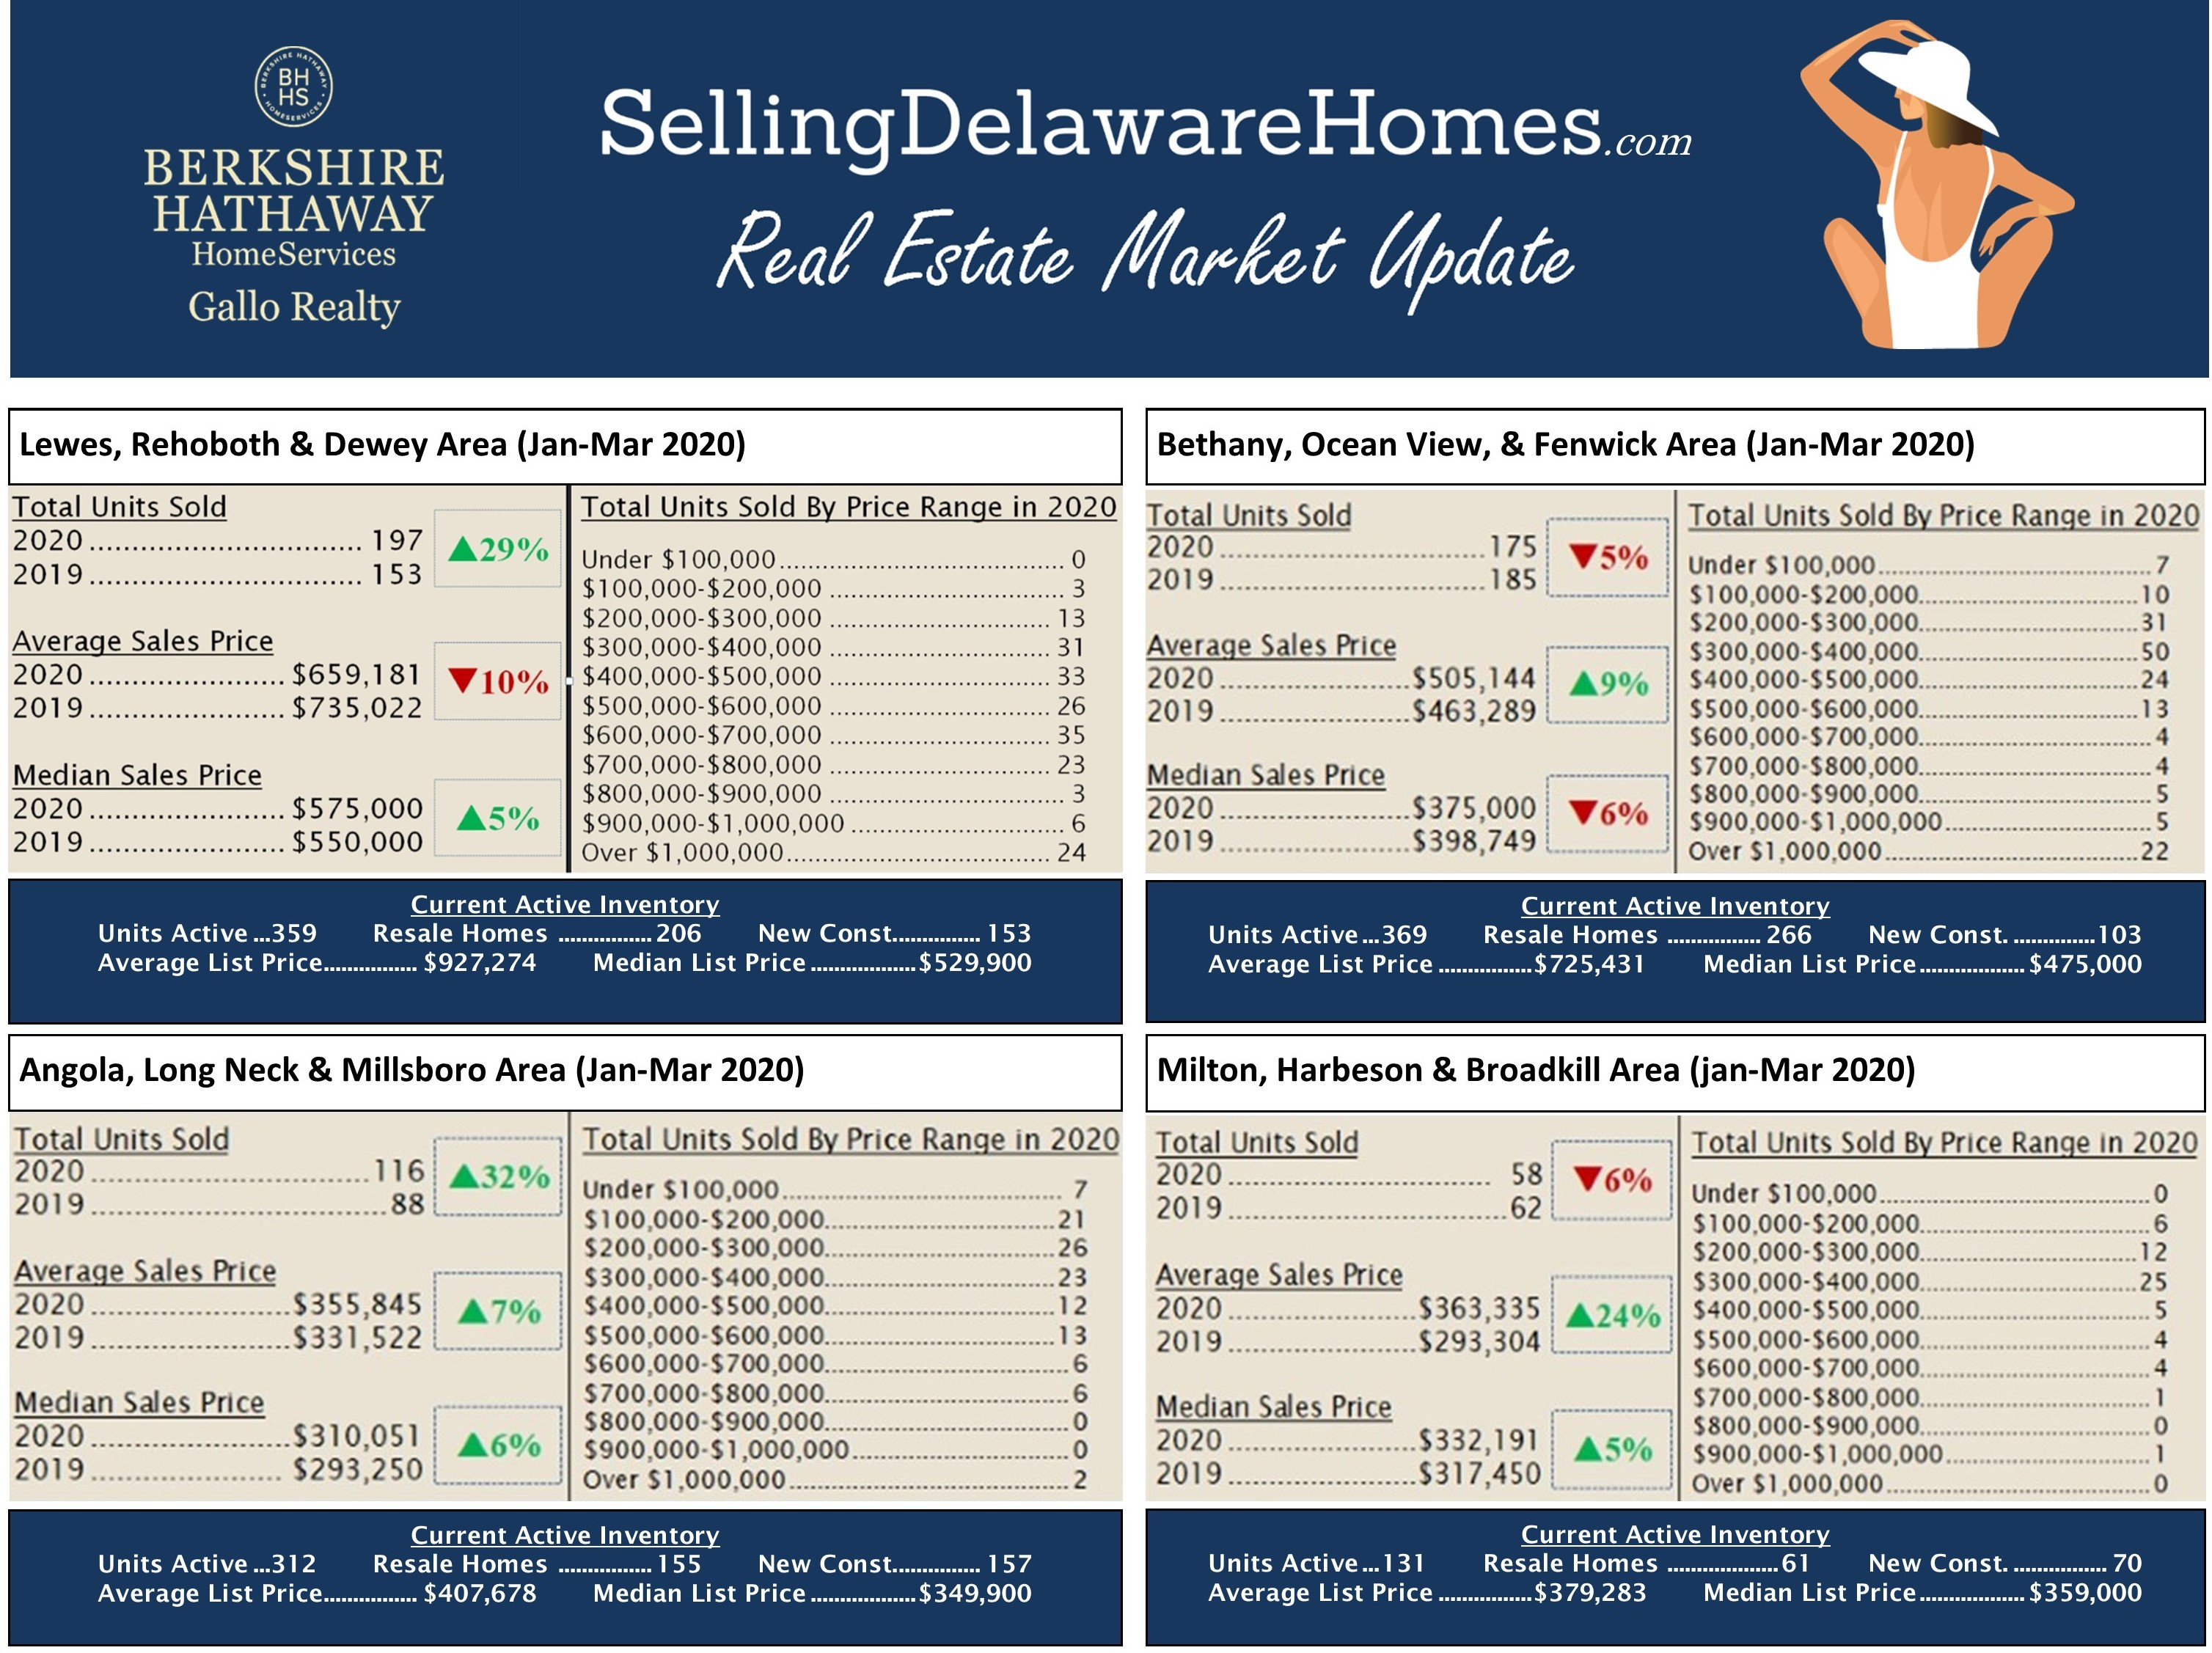 Real Estate Activity 1st Qtr. 2020 Sussex County